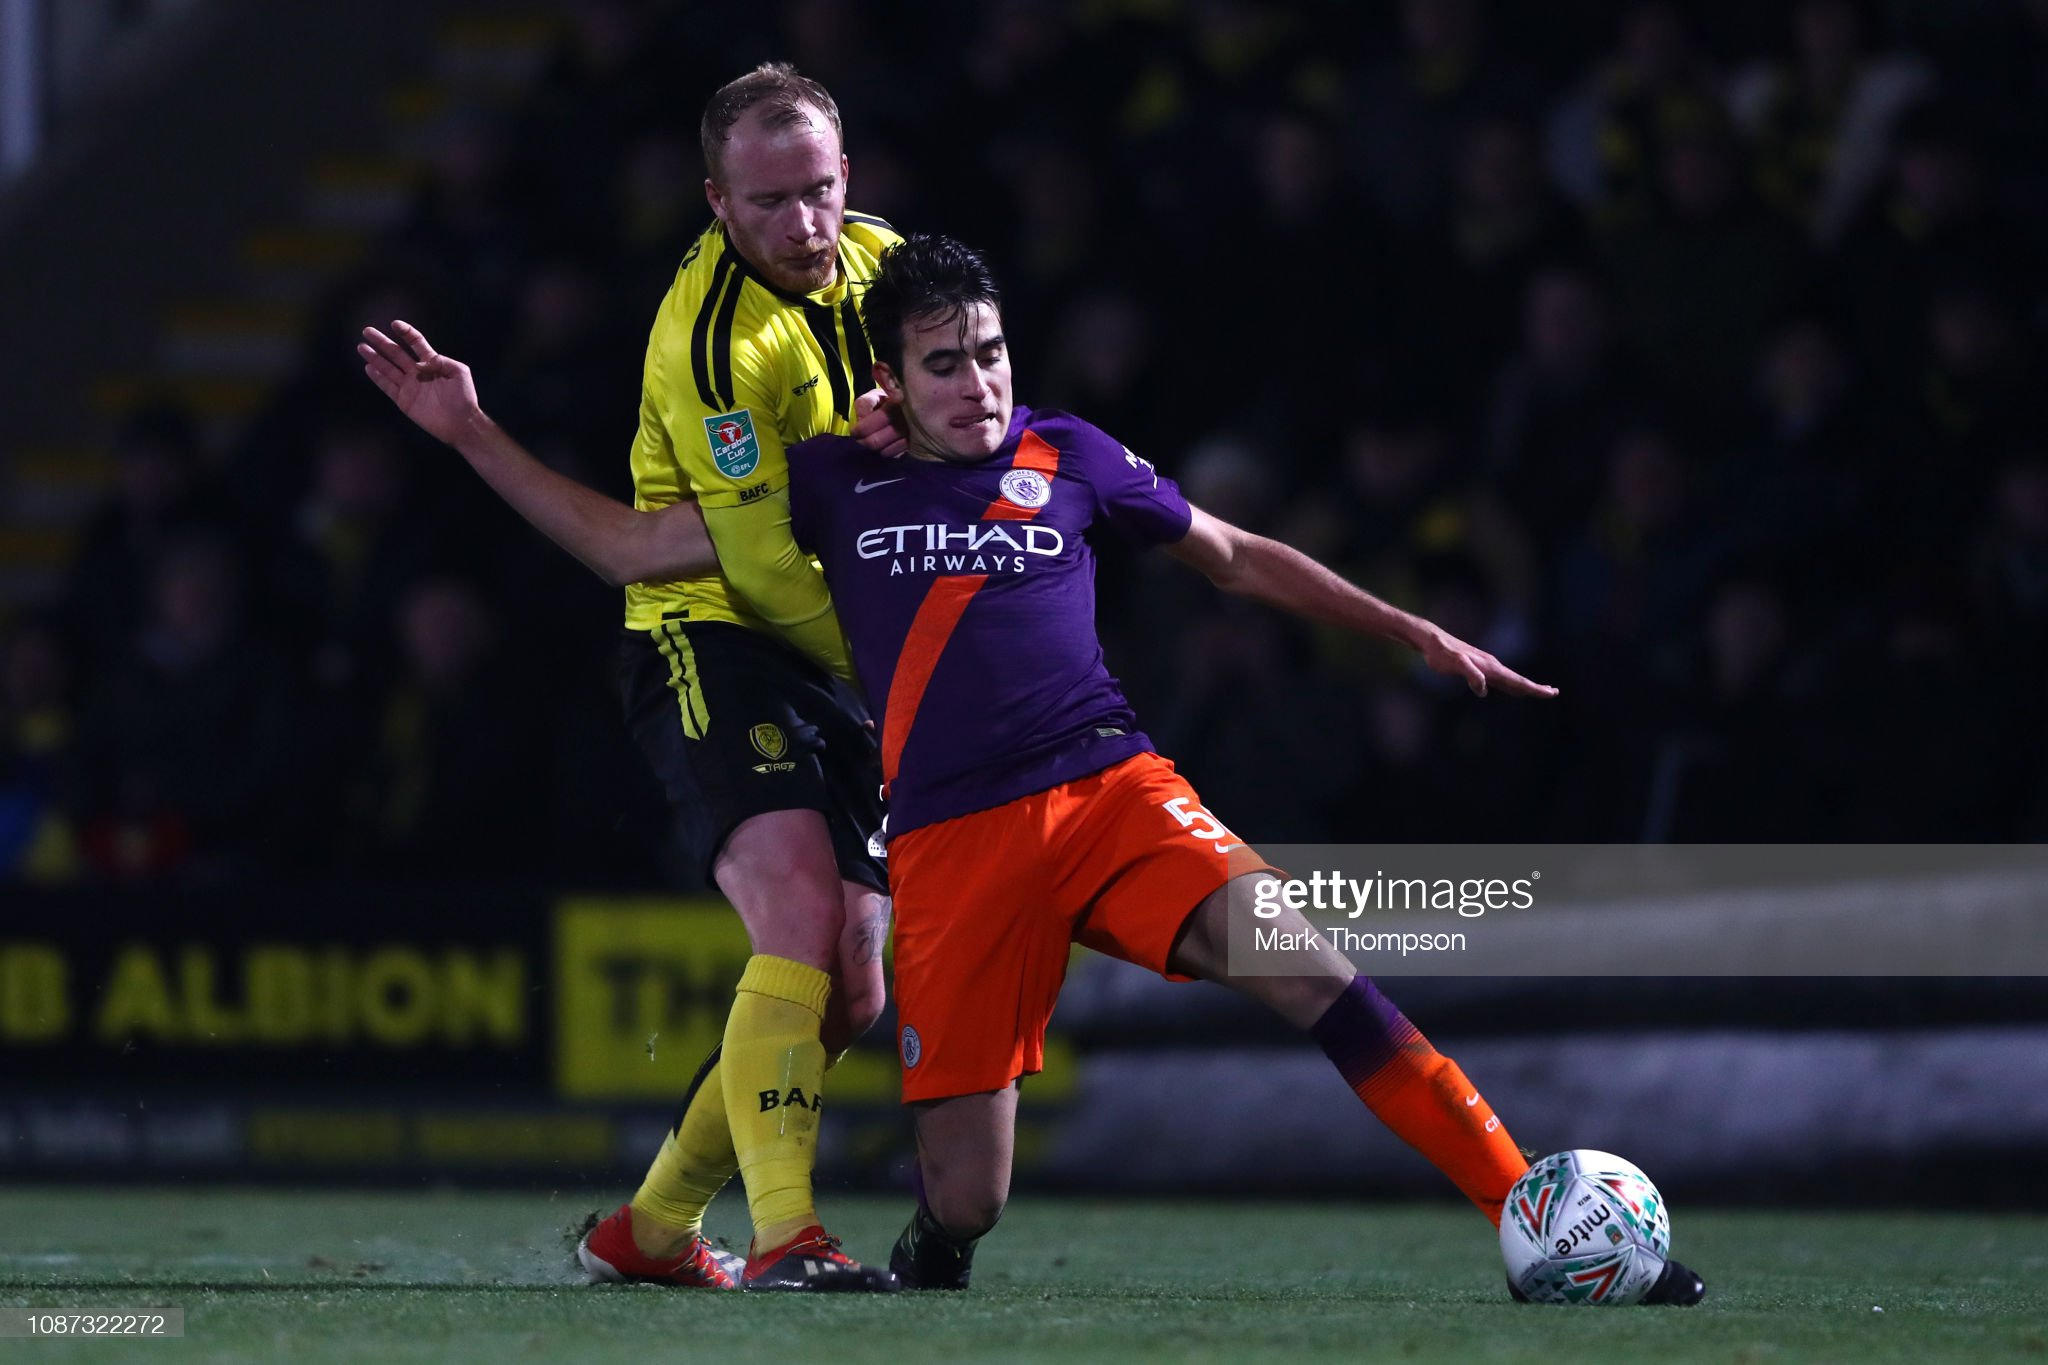 https://media.gettyimages.com/photos/eric-garcia-of-manchester-city-battles-for-possession-with-liam-boyce-picture-id1087322272?s=2048x2048